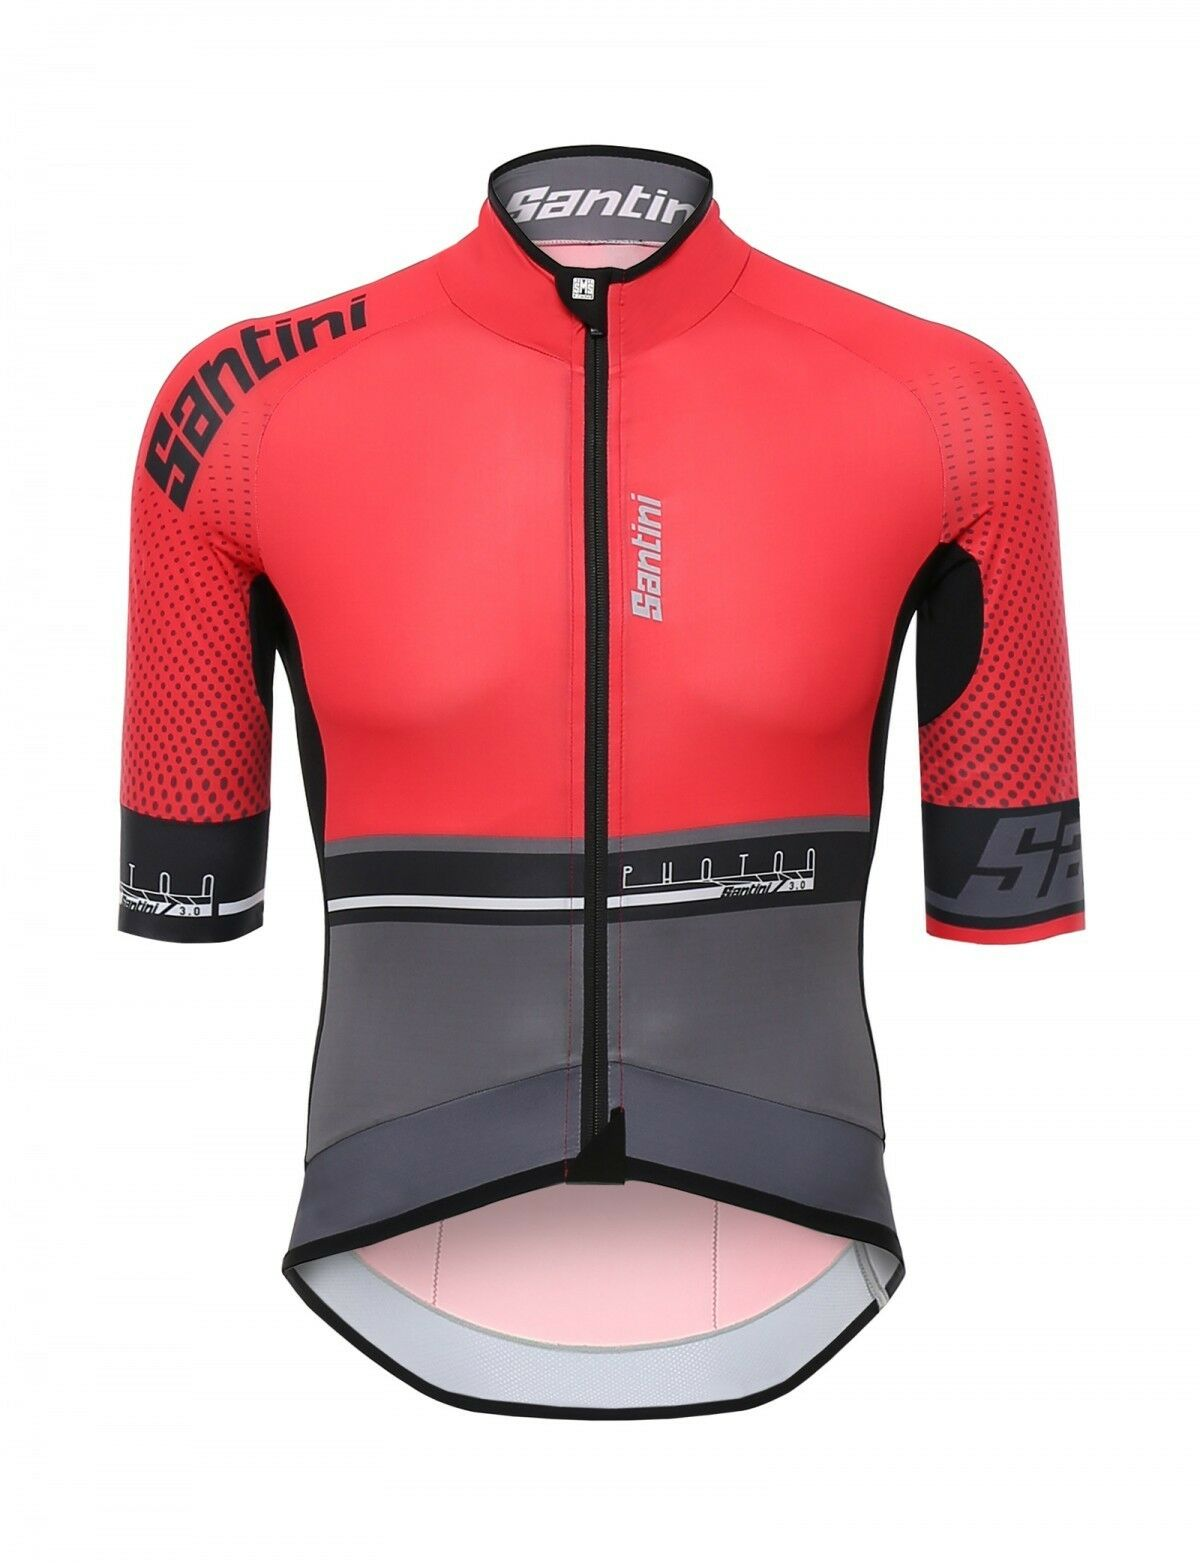 MAGLIA SANTINI PHOTON 3.0 red black tg. XXL